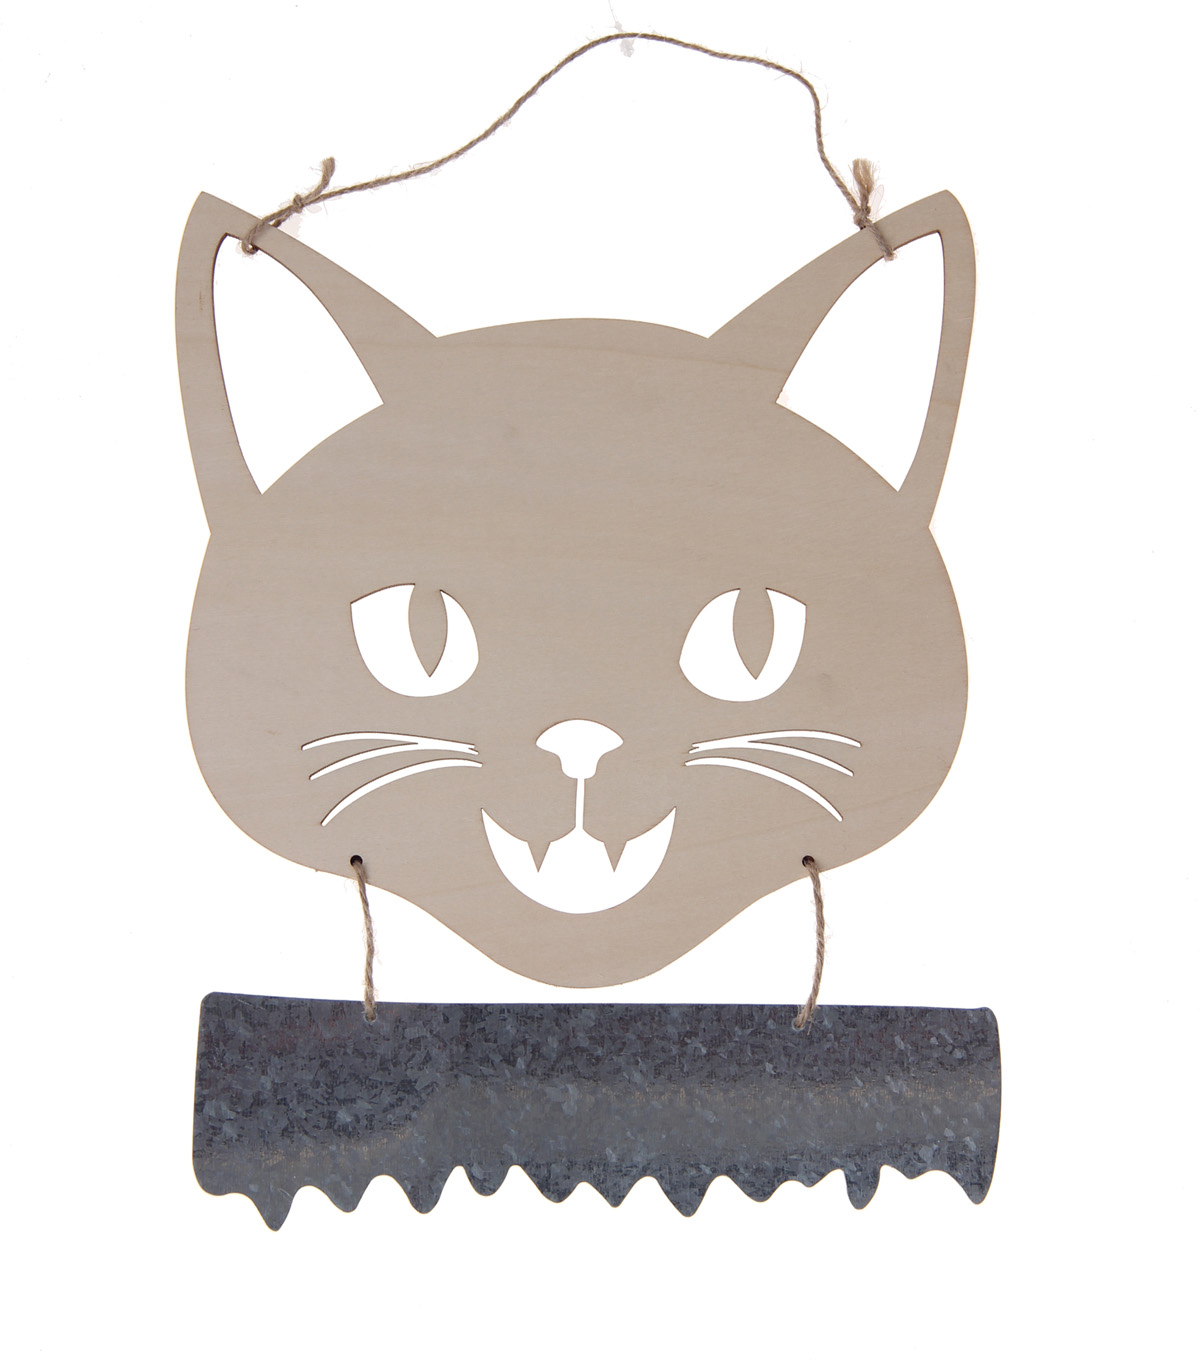 Maker\u0027s Halloween Craft 8.6\u0027\u0027x8.6\u0027\u0027 Wooden Hanging Cat Face